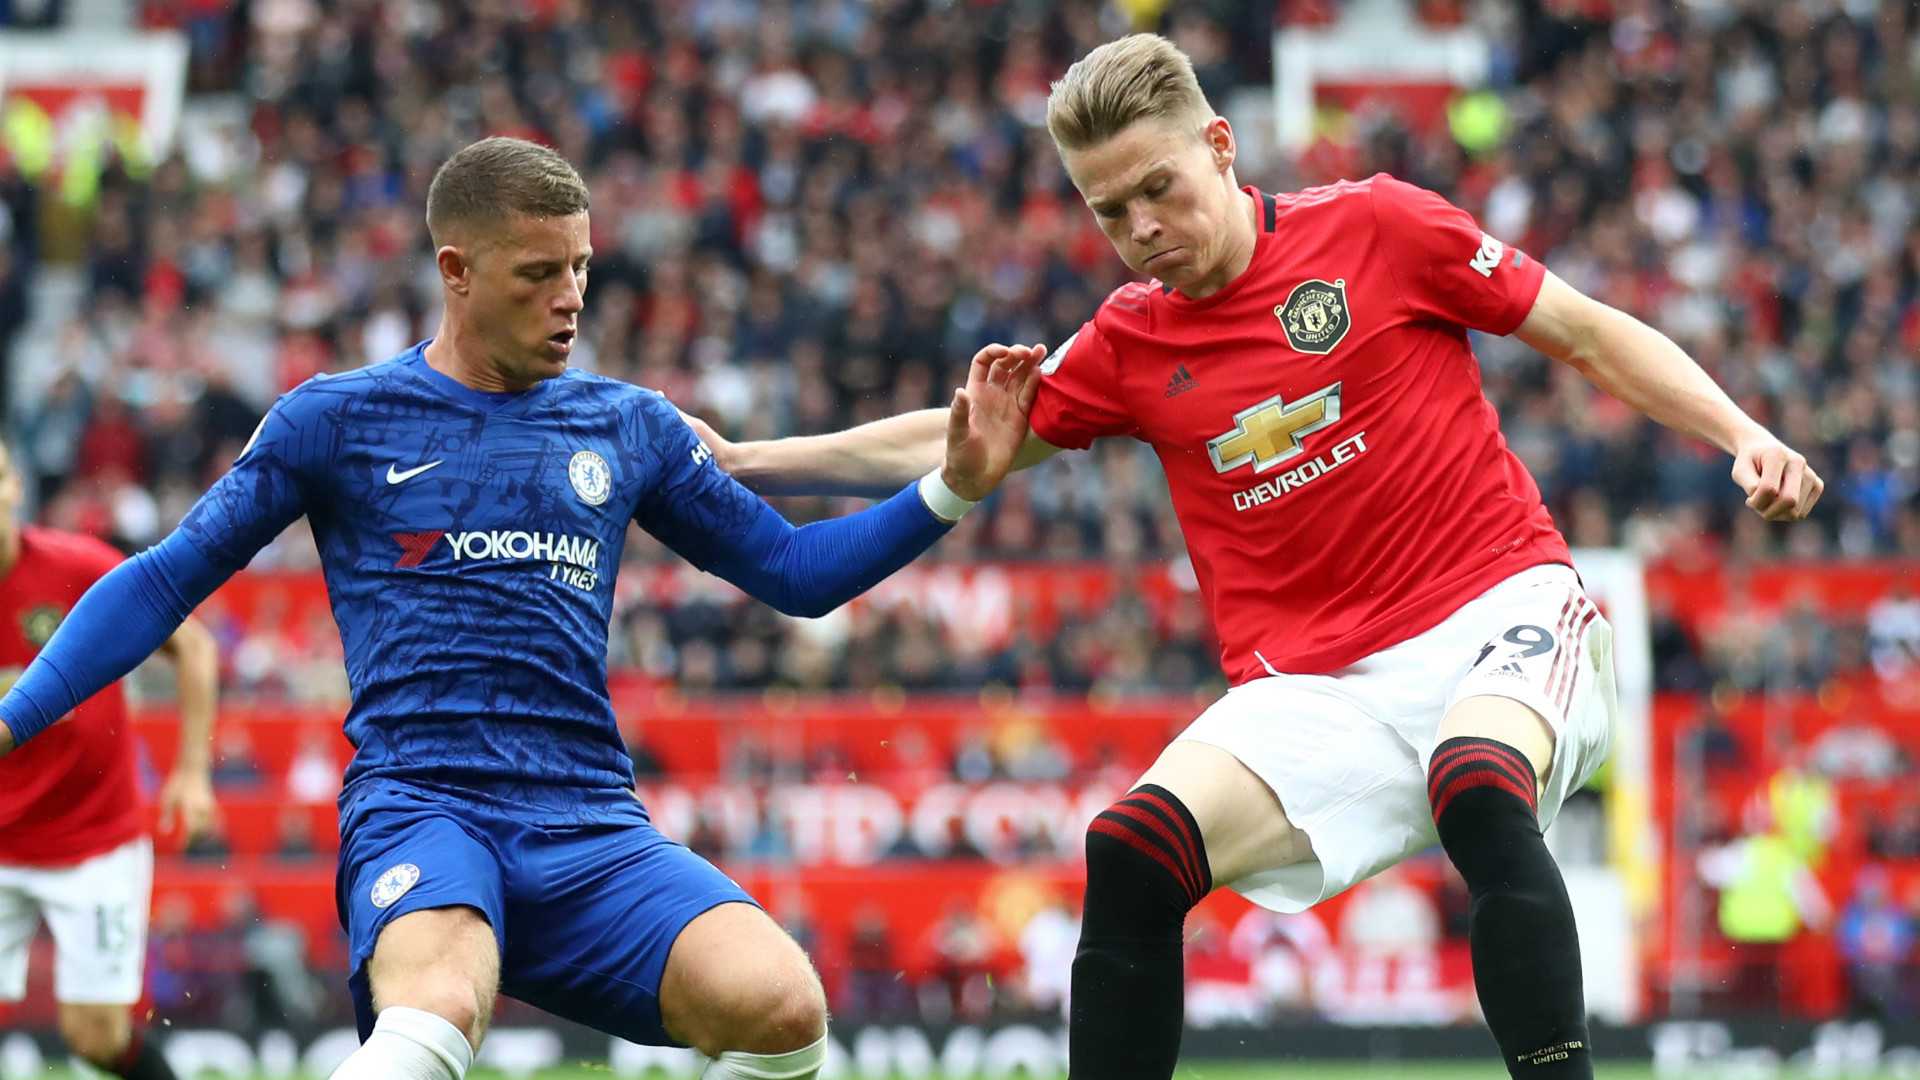 Ross Barkley Scott McTominay Chelsea Manchester United 2019-20